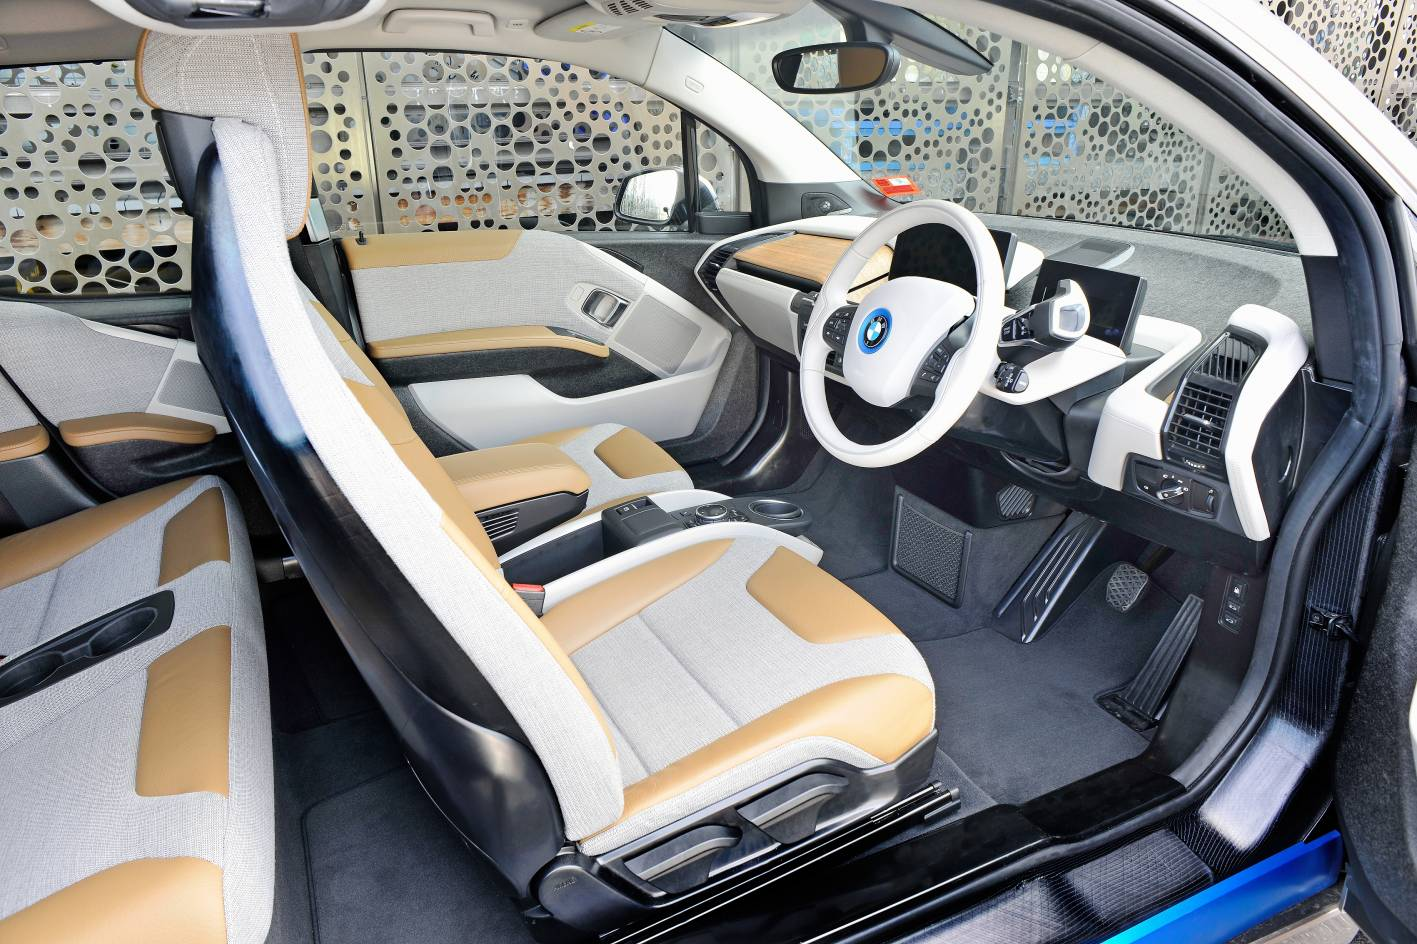 BMW i3 proving popular, pre-orders exceeding expectations ...